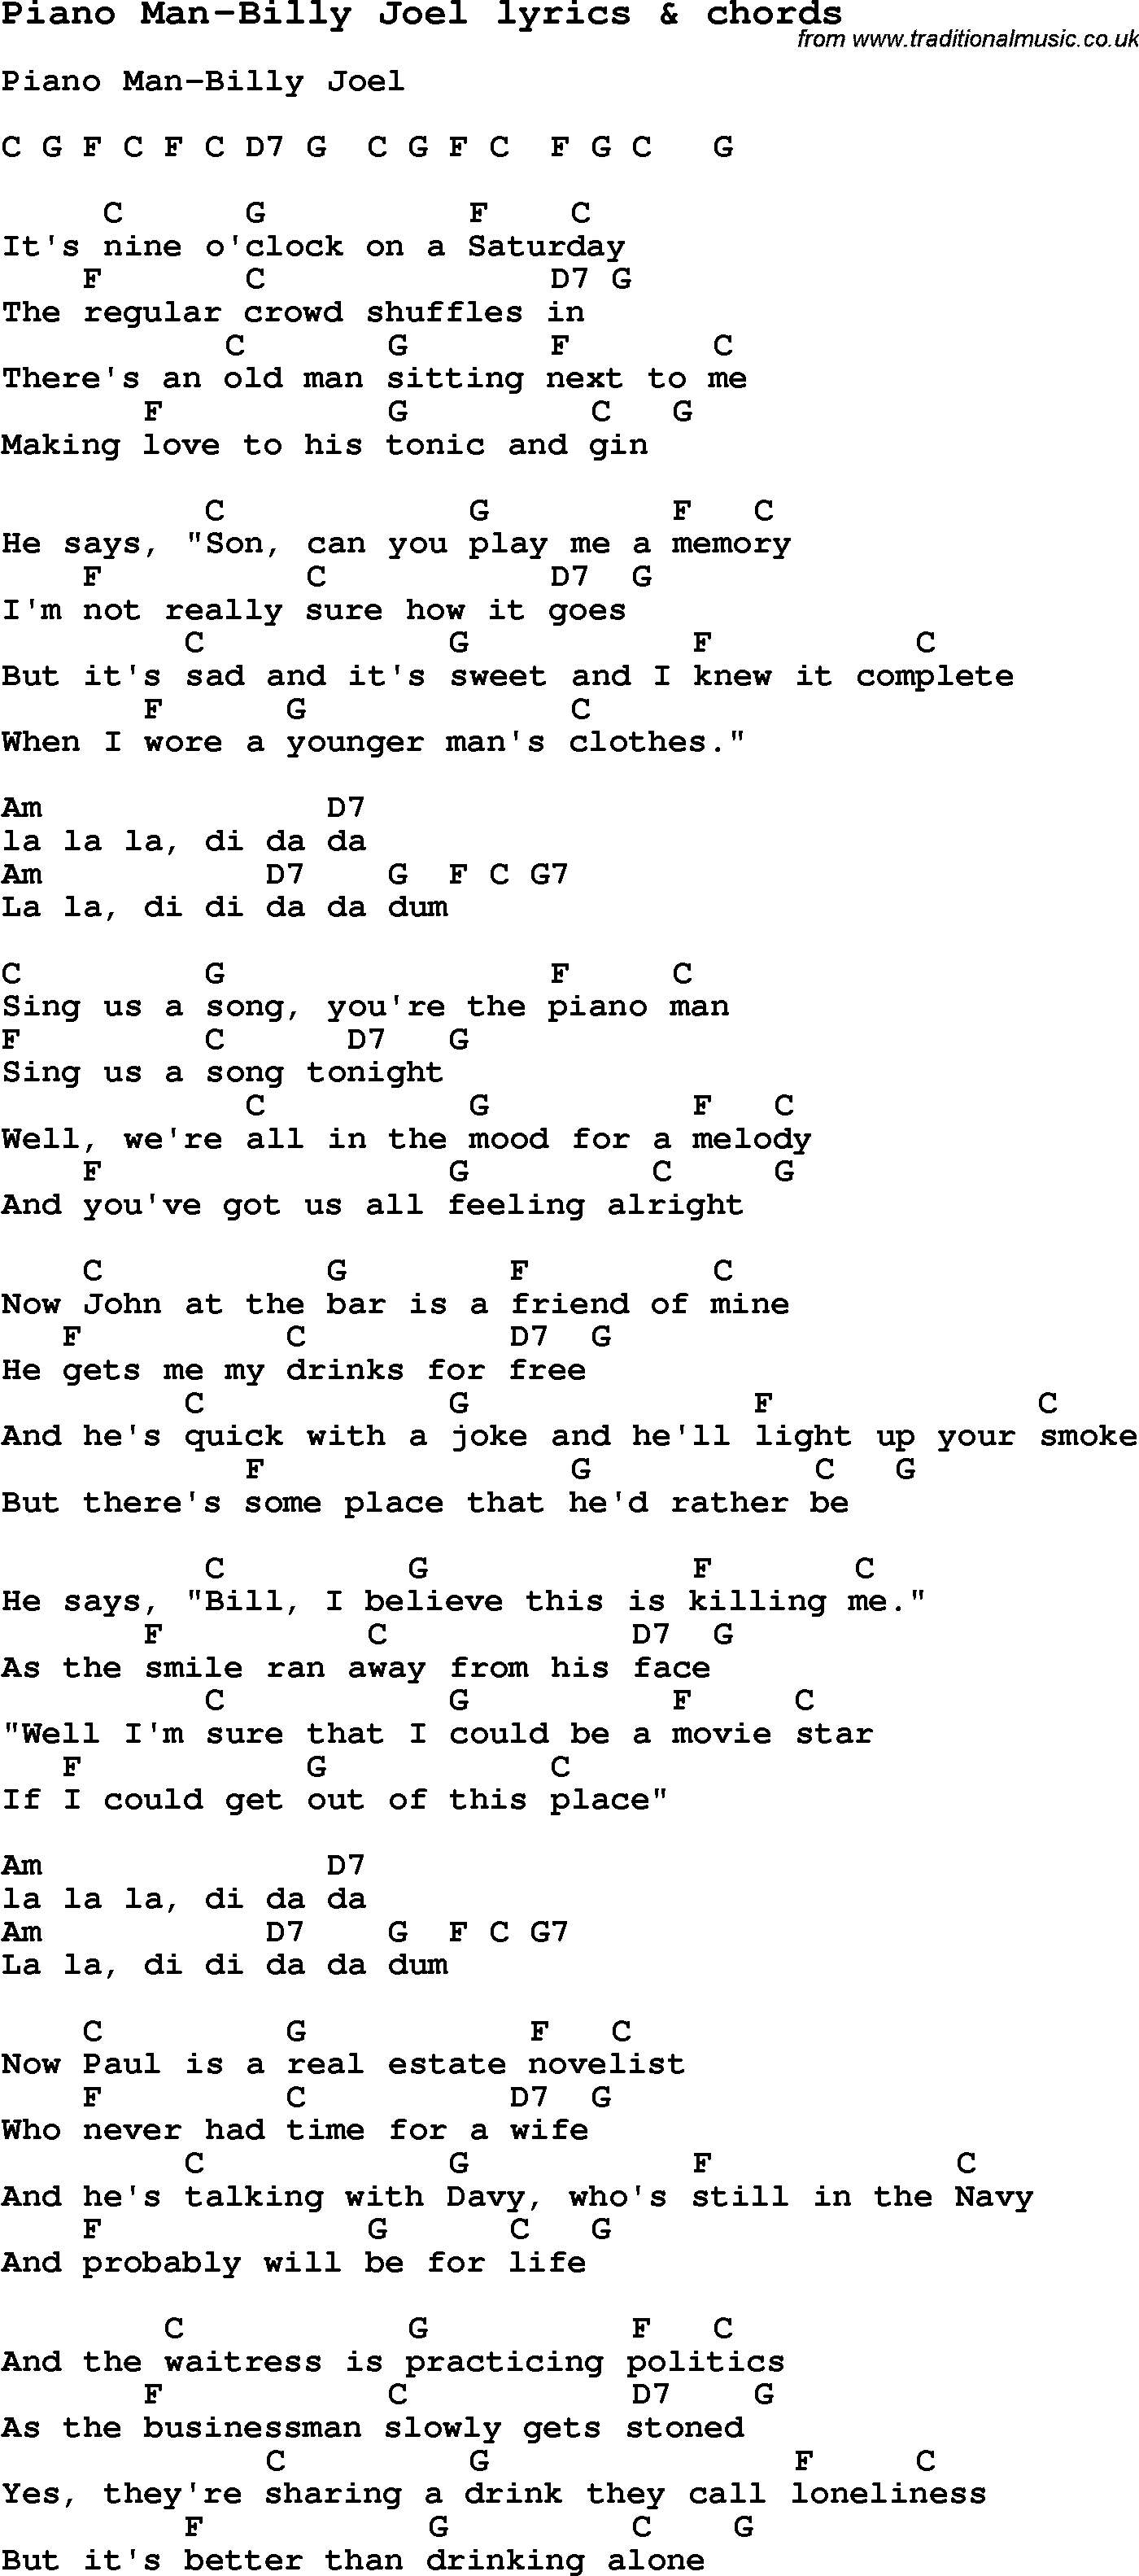 Piano Man Chords Love Song Lyrics Forpiano Man Billy Joel With Chords